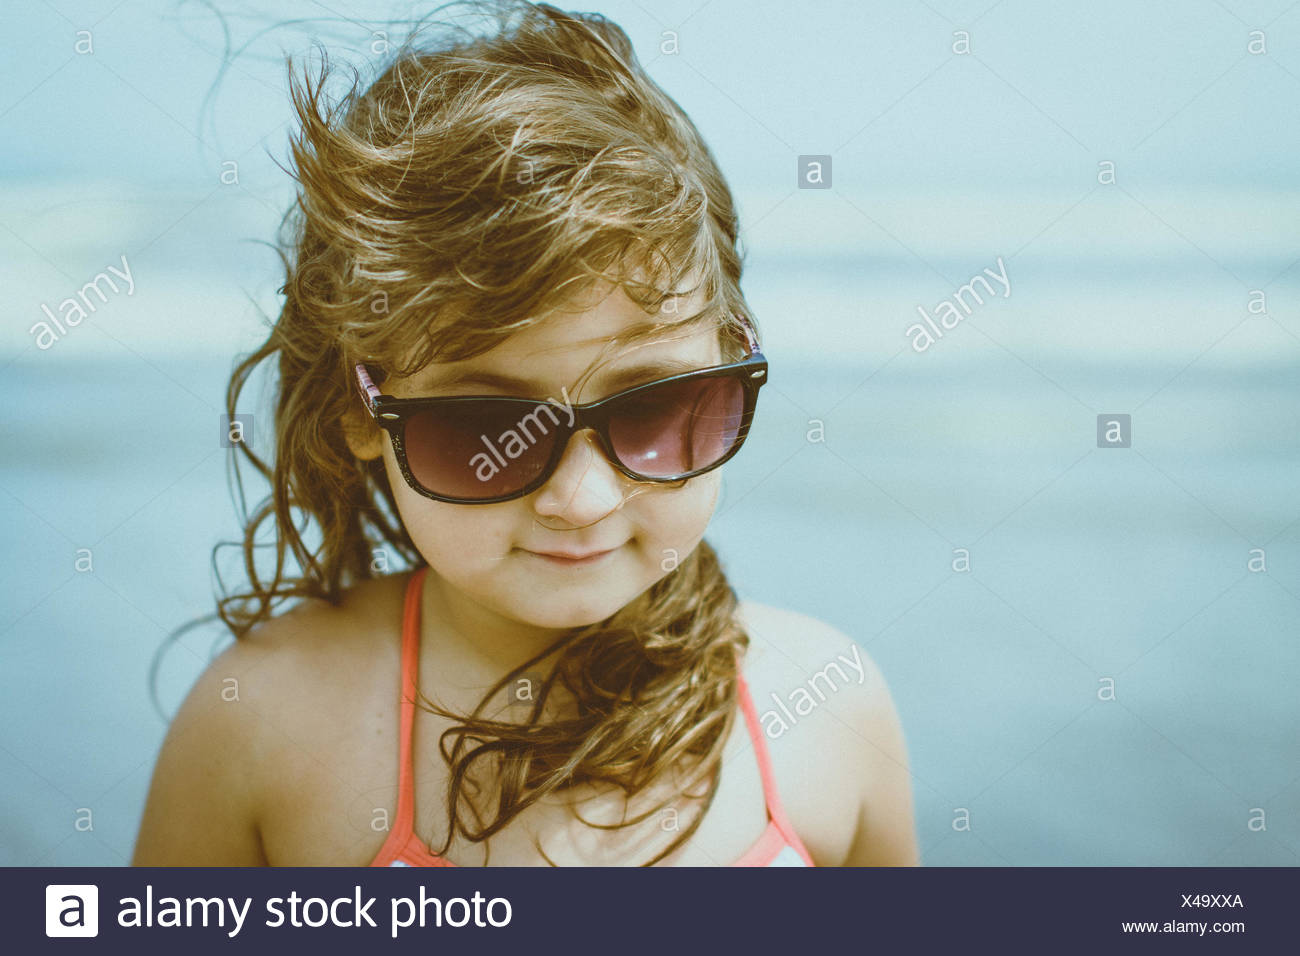 Portrait of girl (4-5) with windswept blonde hair wearing sunglasses - Stock Image